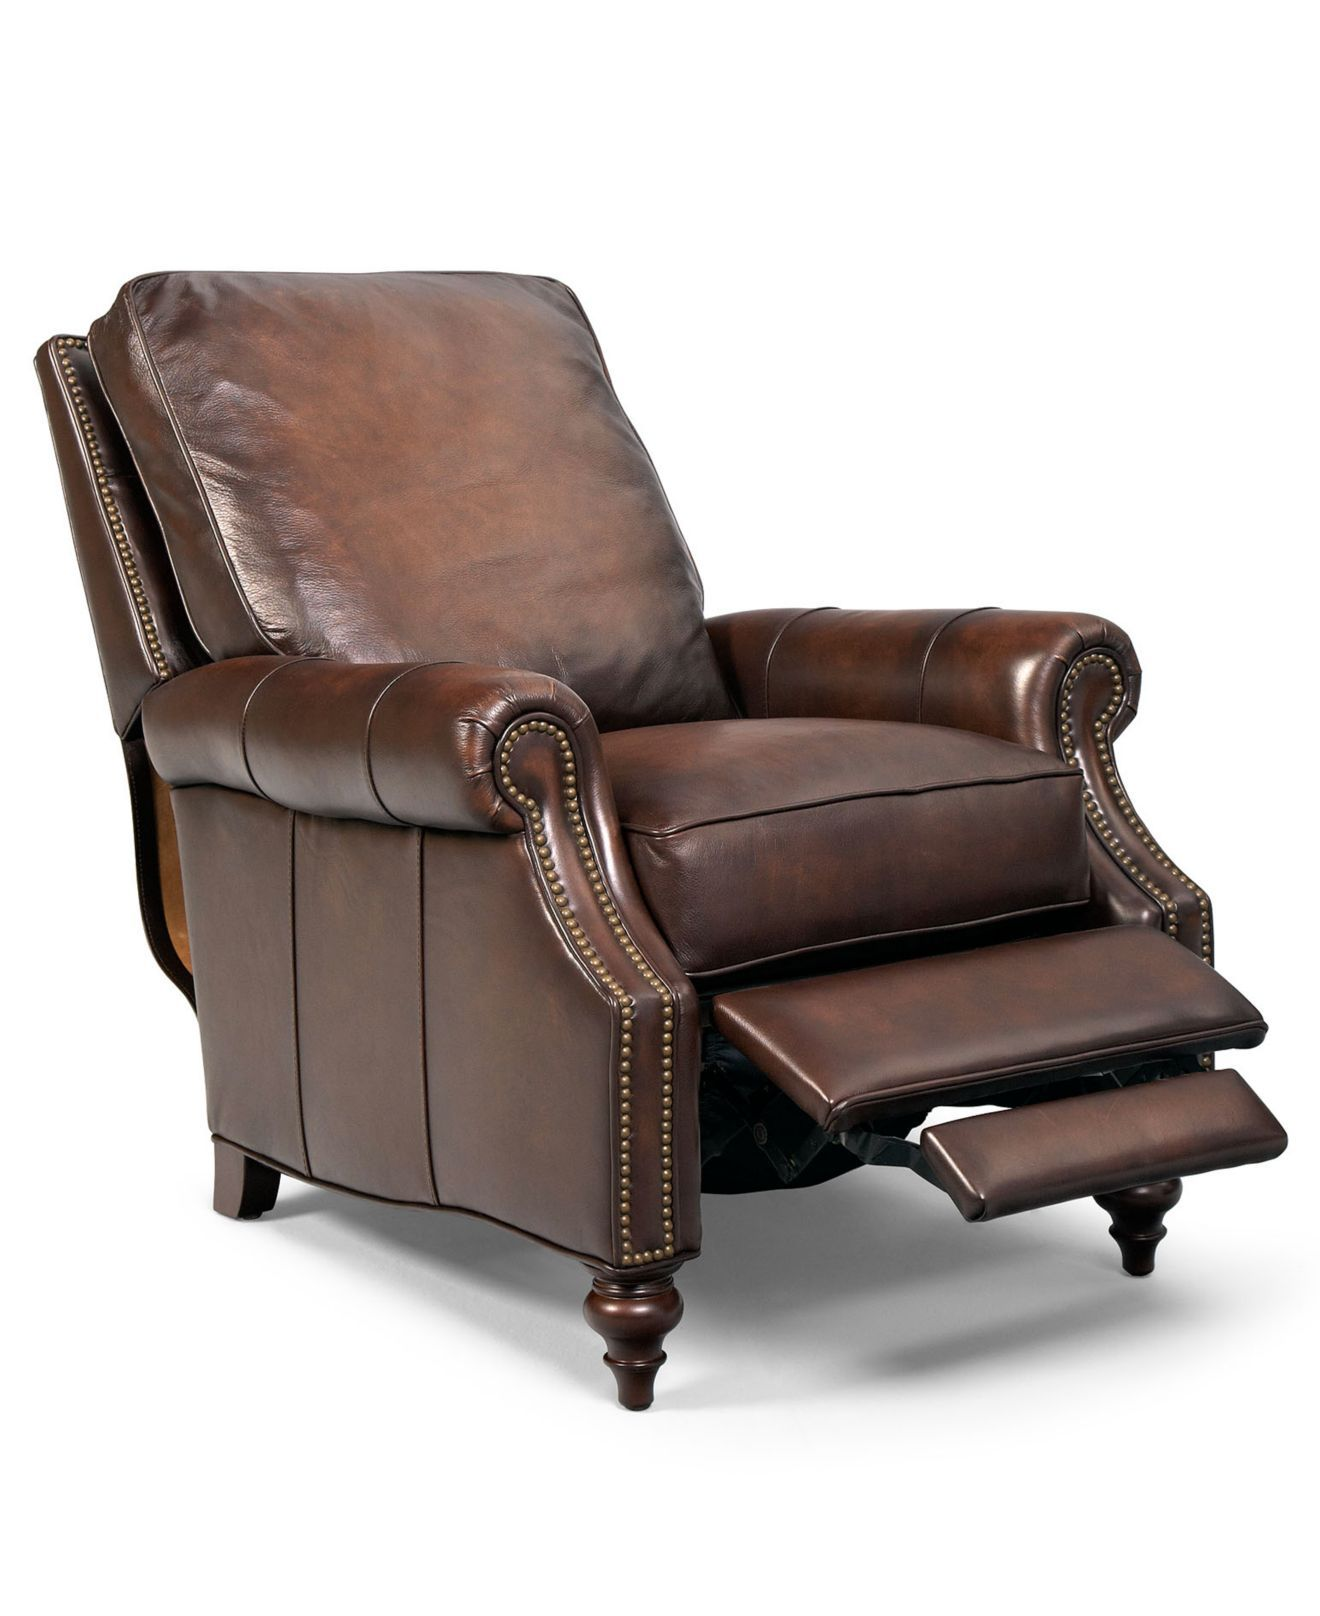 "Madigan Leather Recliner Chair 32 75""W x 38 5""D x 39""H Chairs"